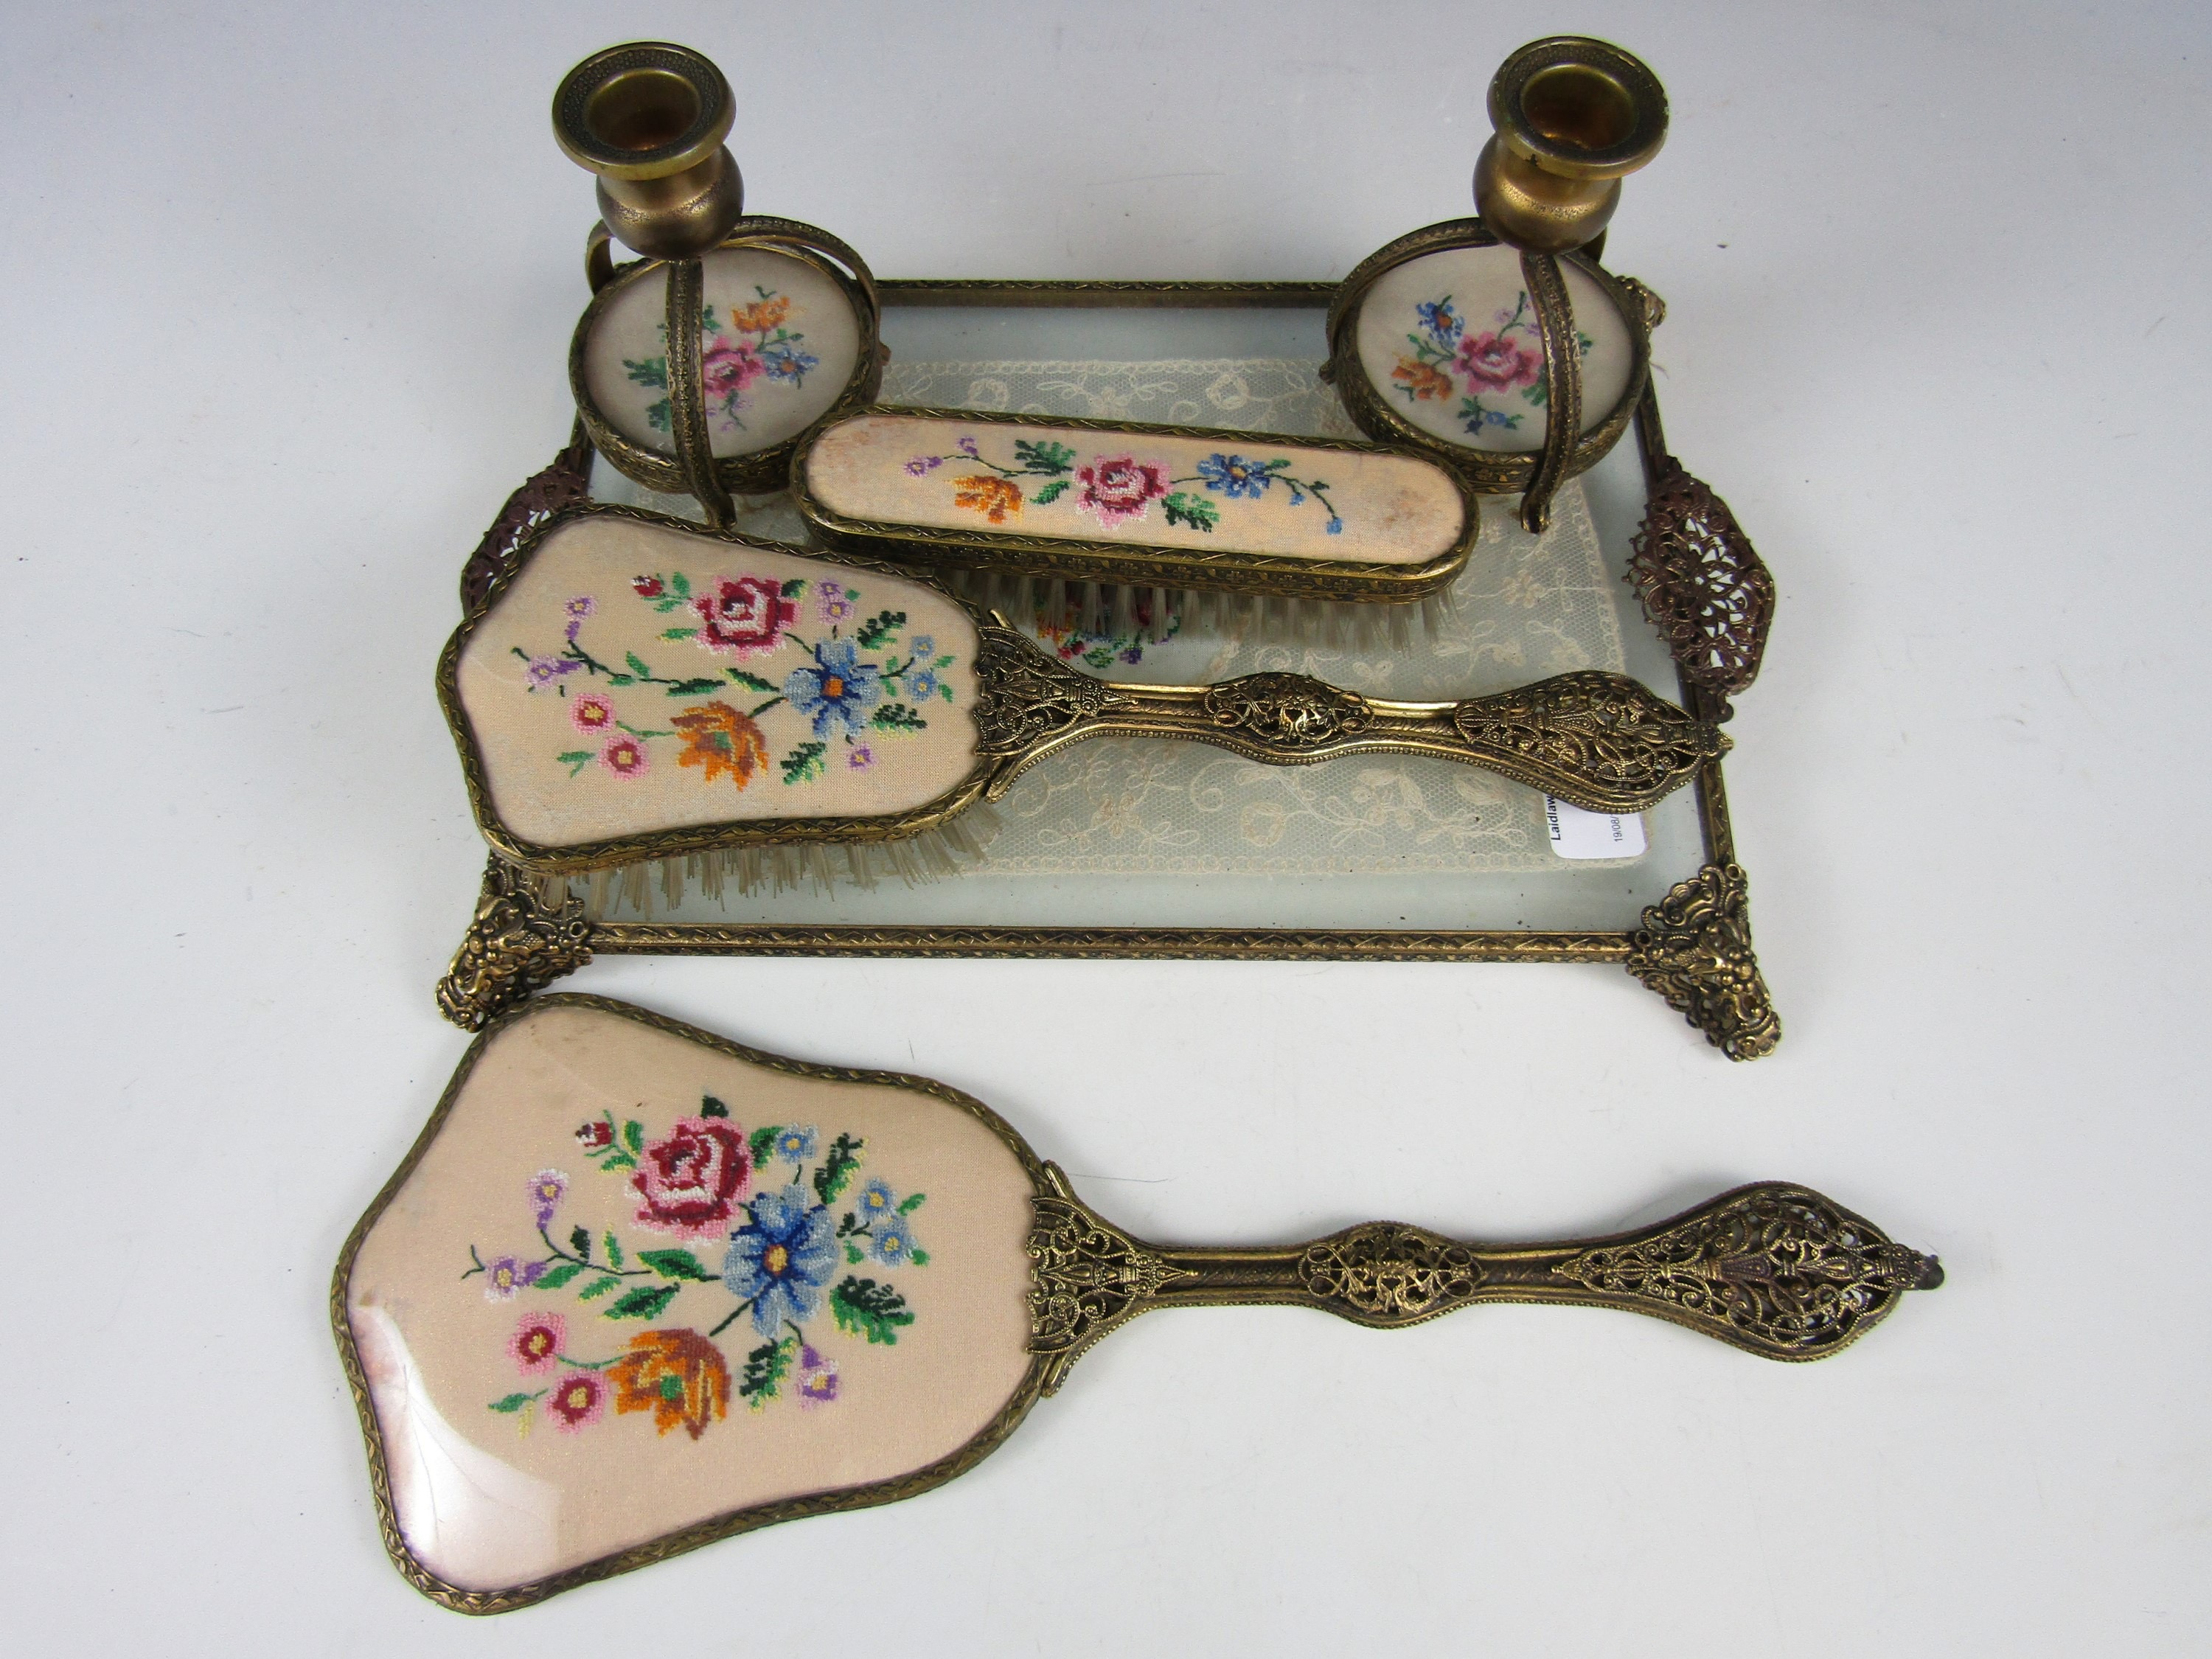 Lot 61 - A 1940's hand embroidered dressing table set